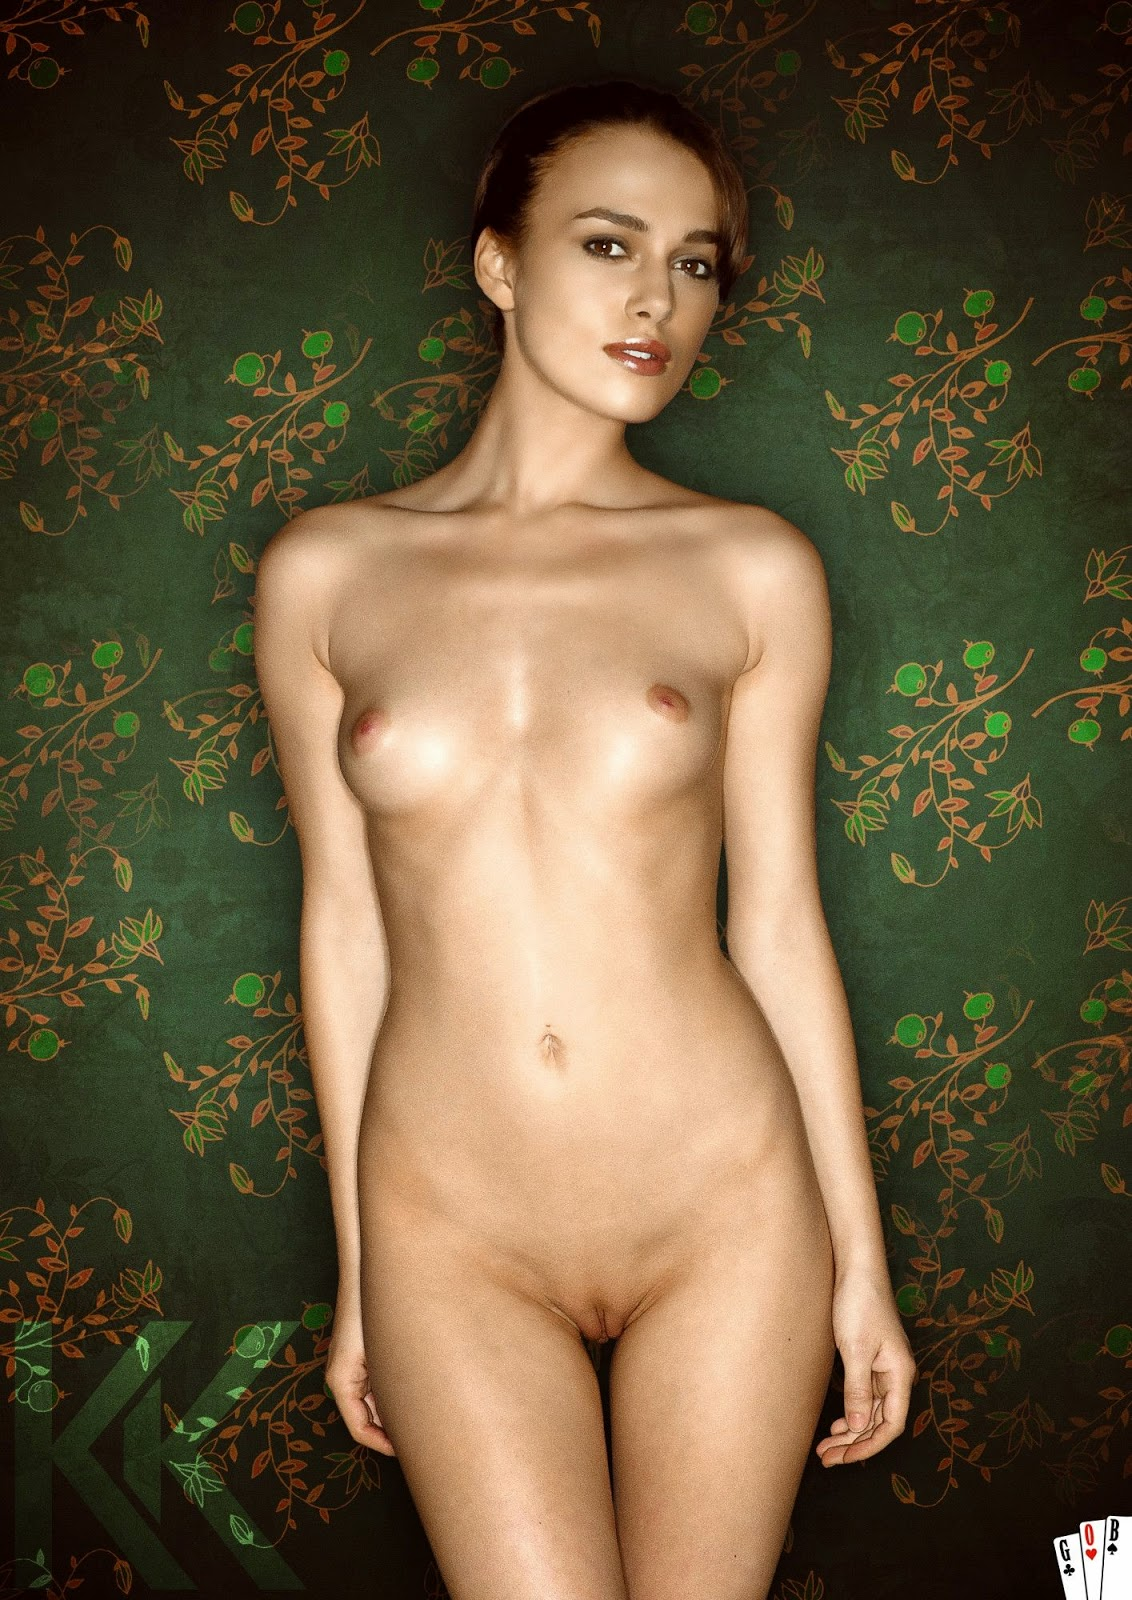 Are mistaken. Keira knightley nudes videos free hope, you